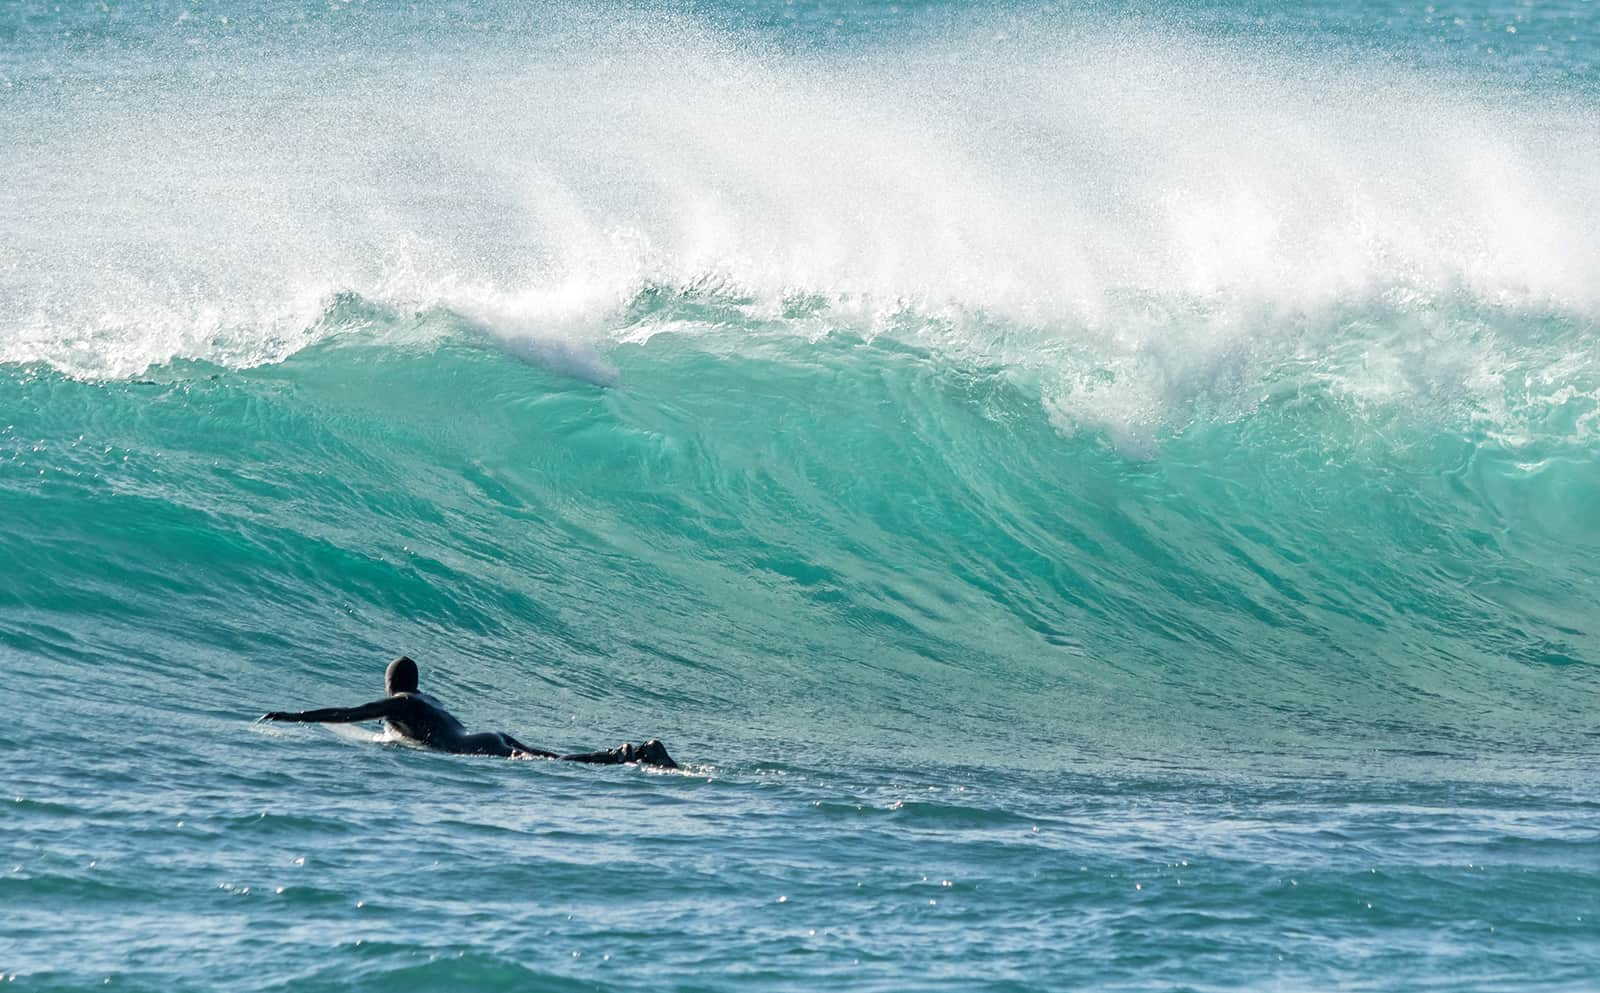 Thats me paddling out after a wave. The wave is ultra sketchy, not a lot of room for error. The